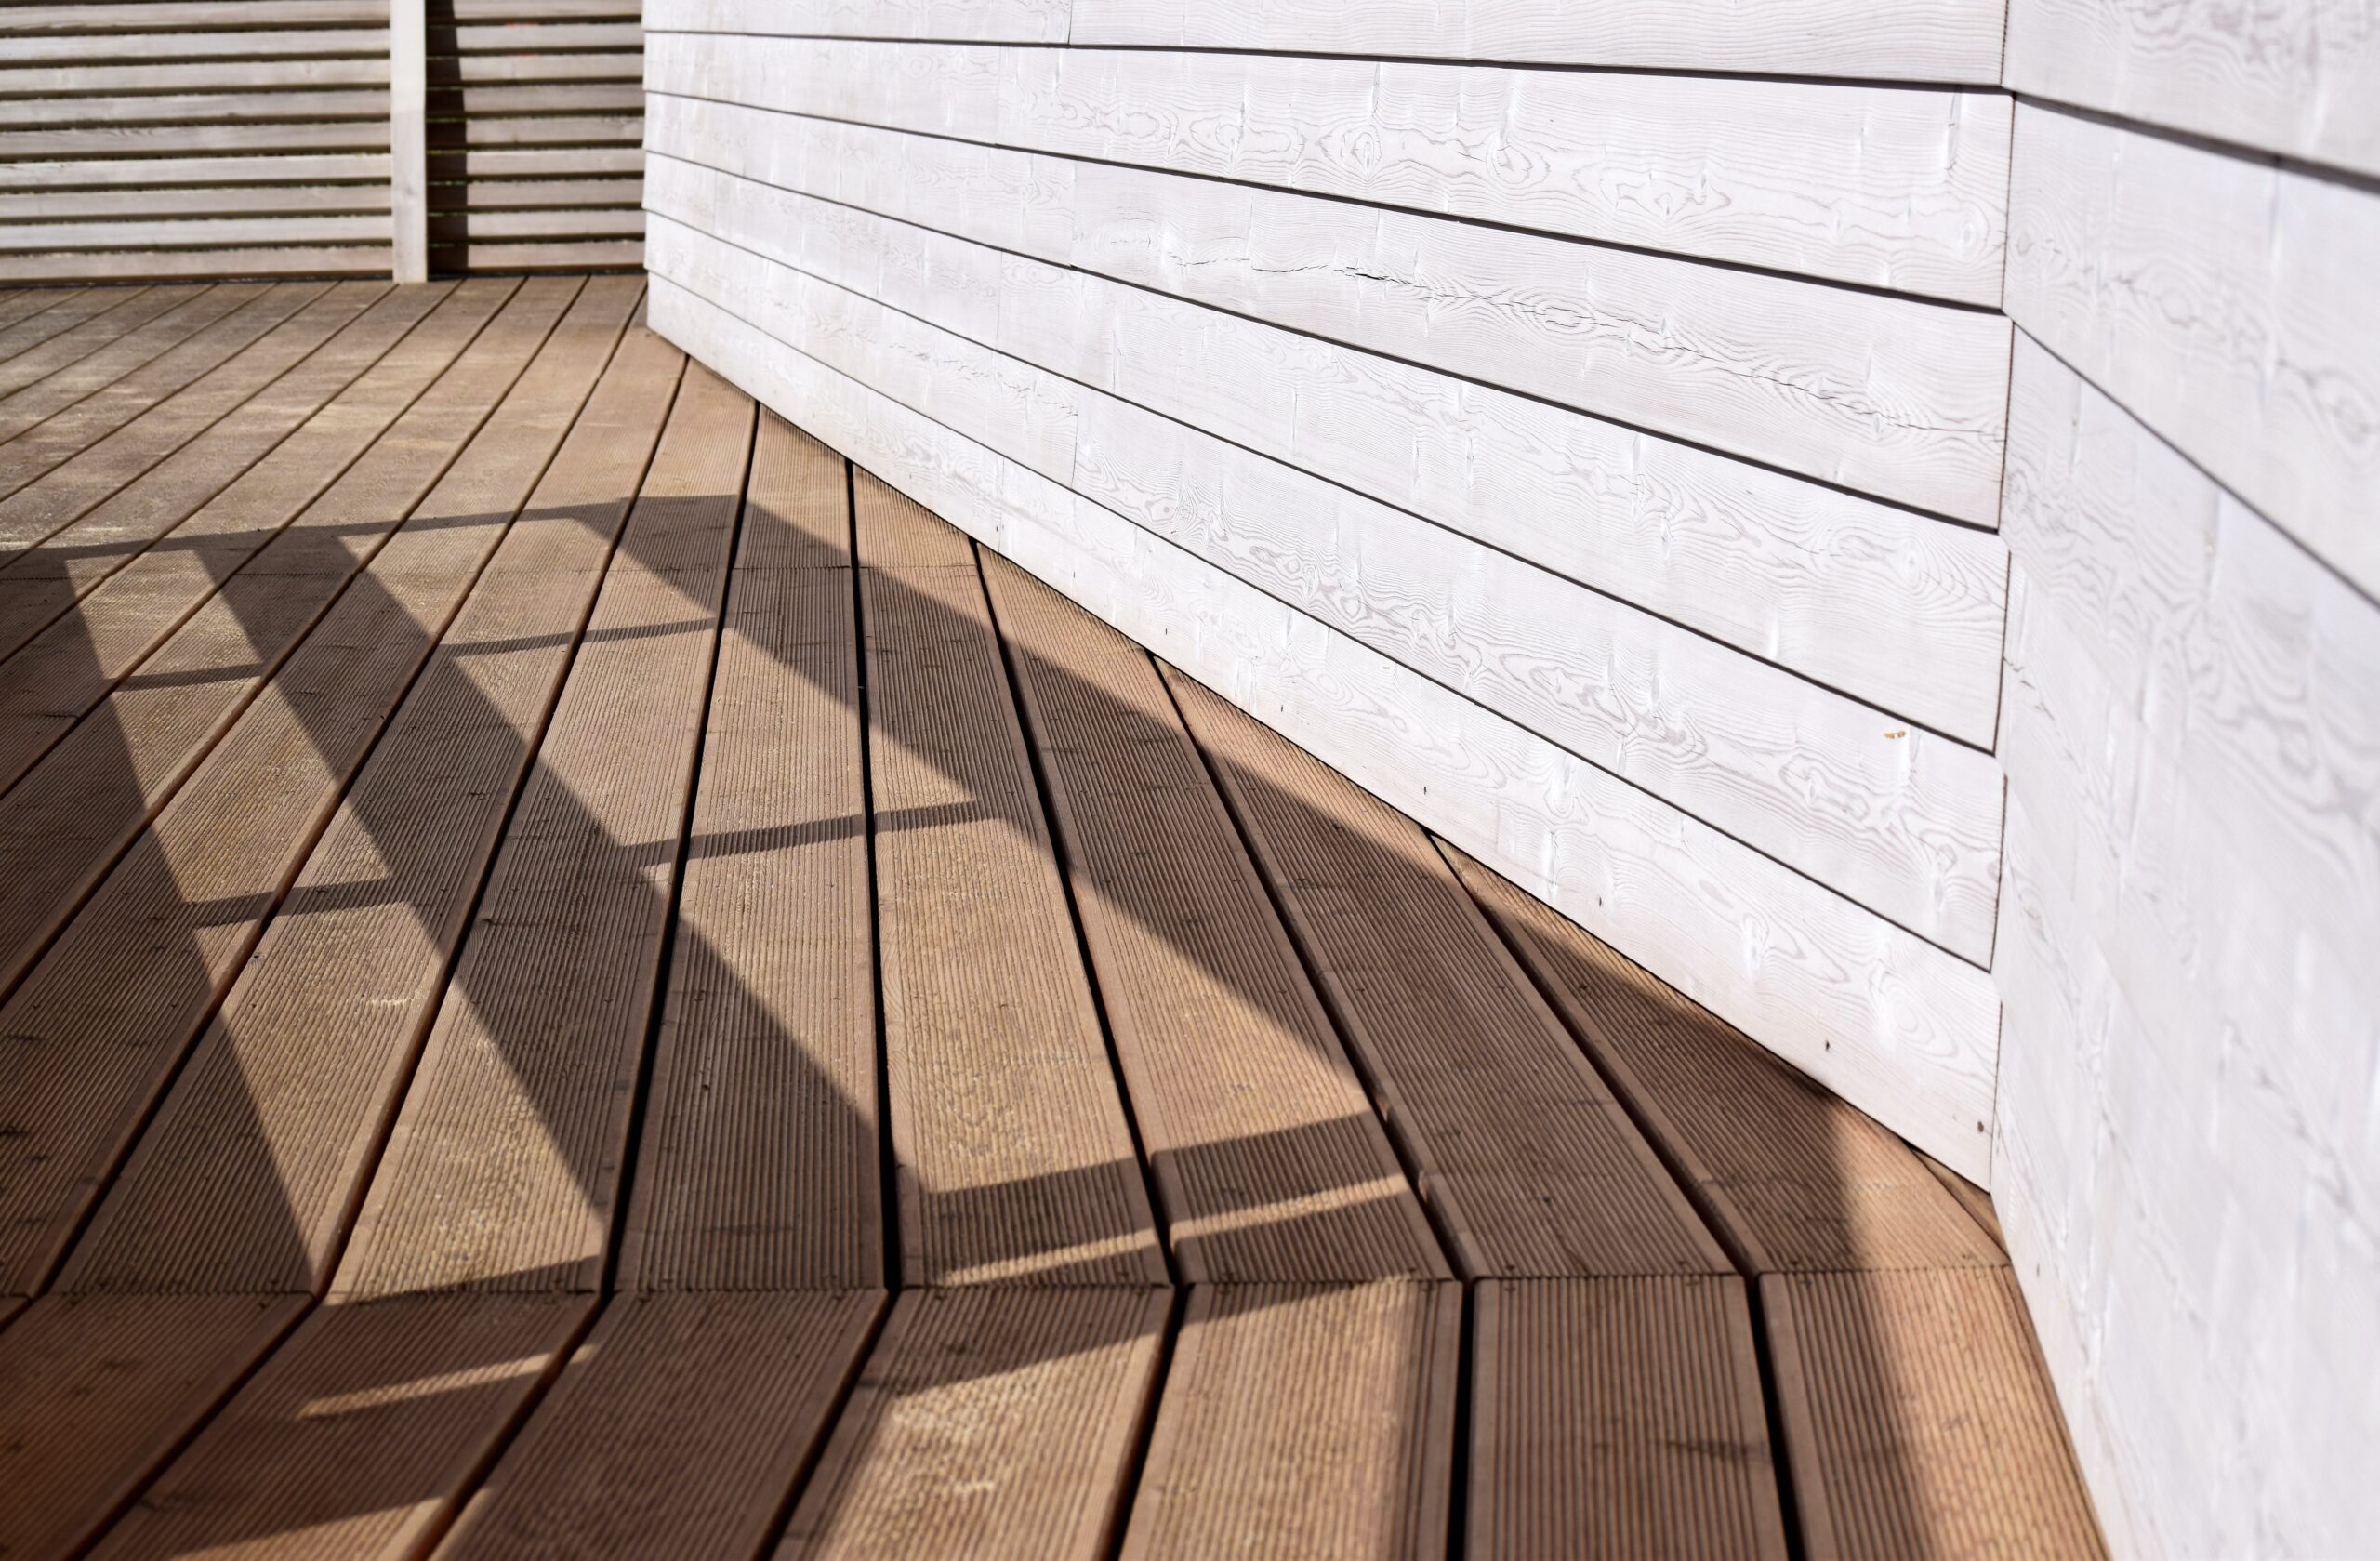 5 Steps to Keep Your Wood Deck Summer-Ready